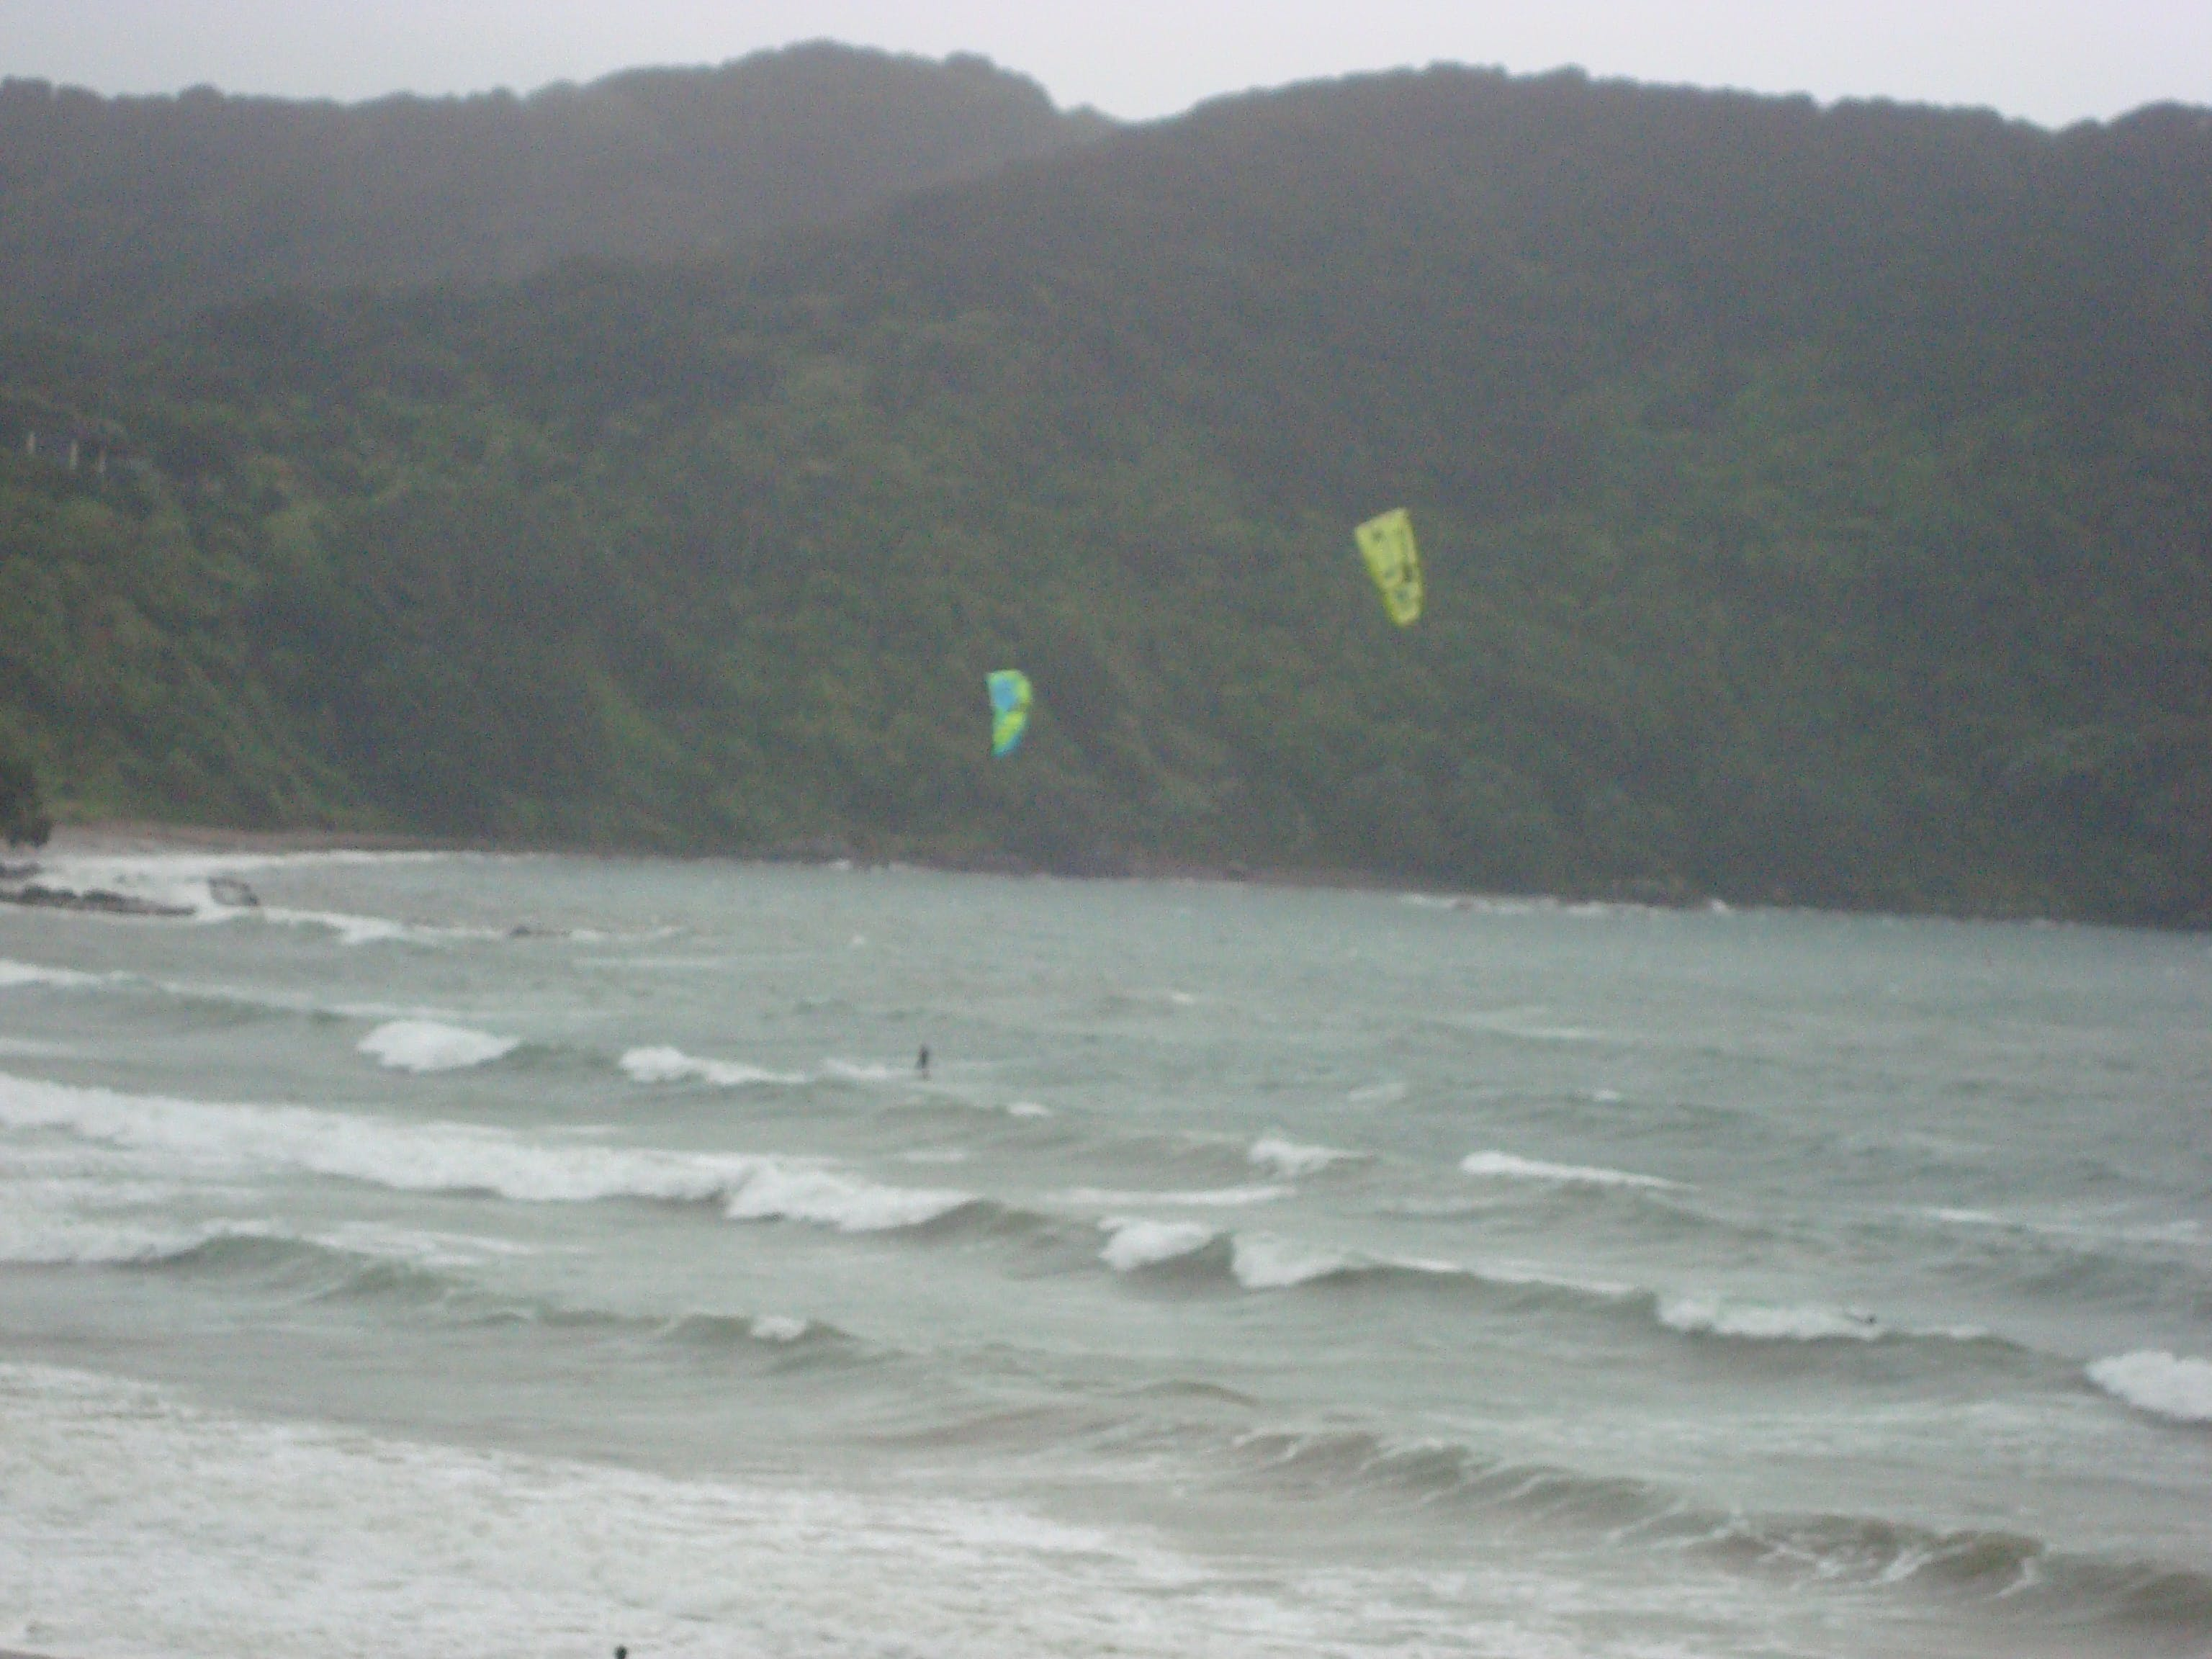 Kite surfers on a stormy day